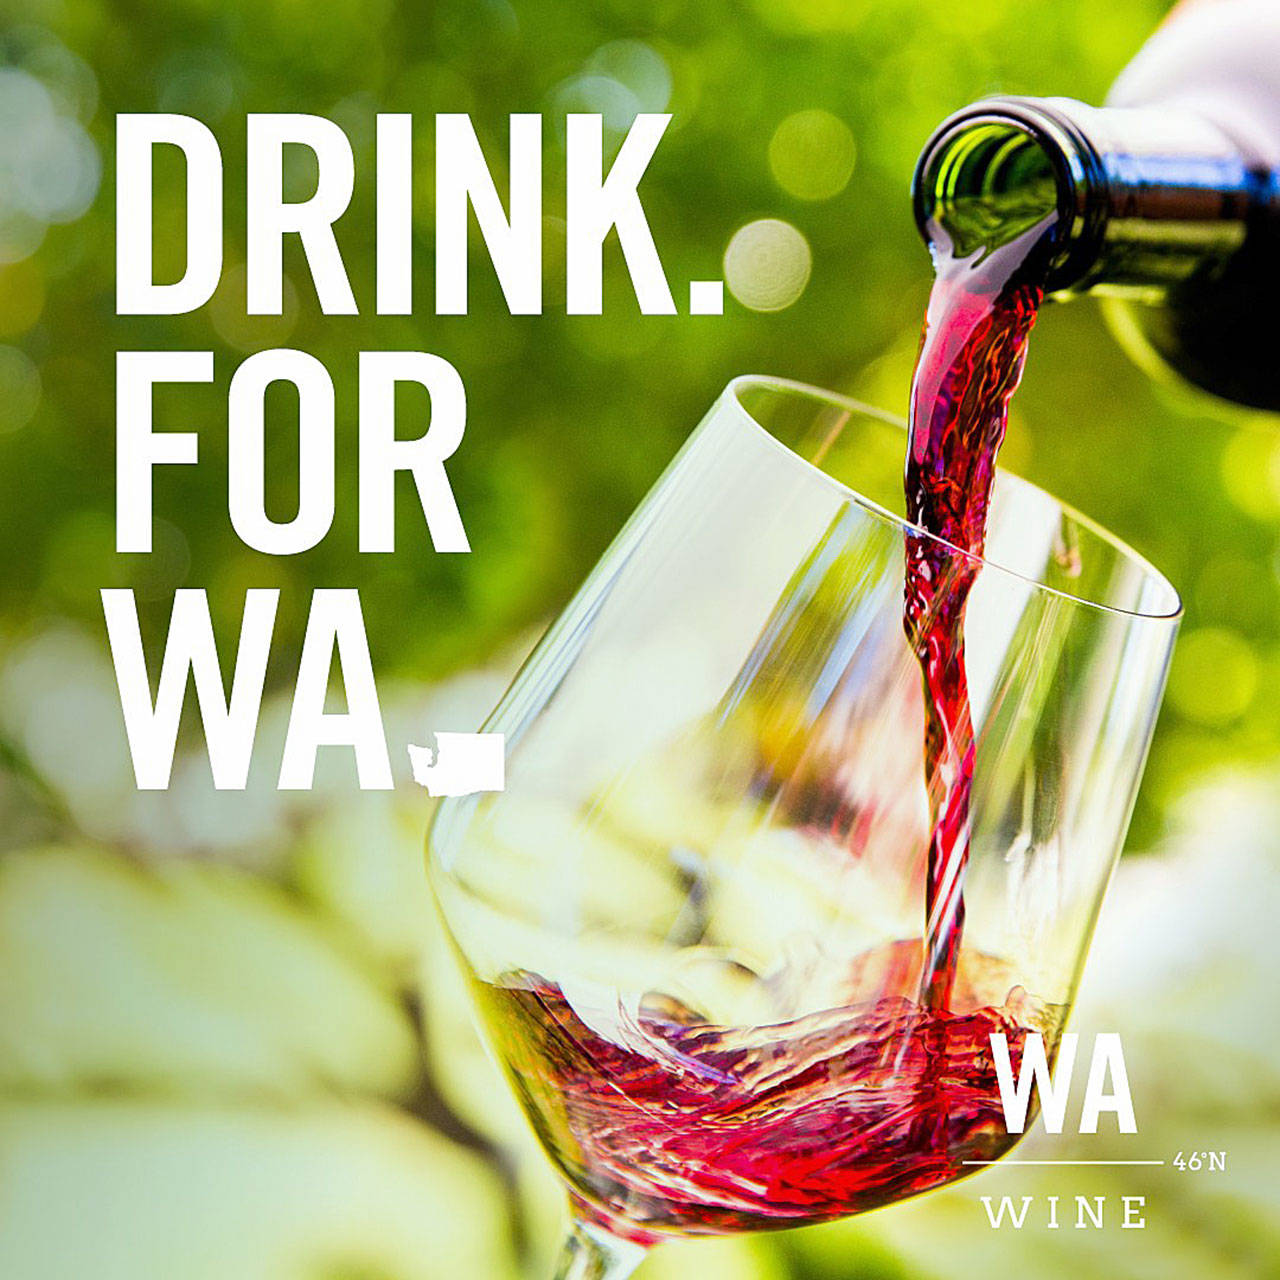 The Washington State Wine Commission is using August, known for decades as Washington Wine Month, to promote the Drink For WA campaign. The commission estimates it will generate 12 million impressions through advertising and social media channels. (Washington State Wine Commission)